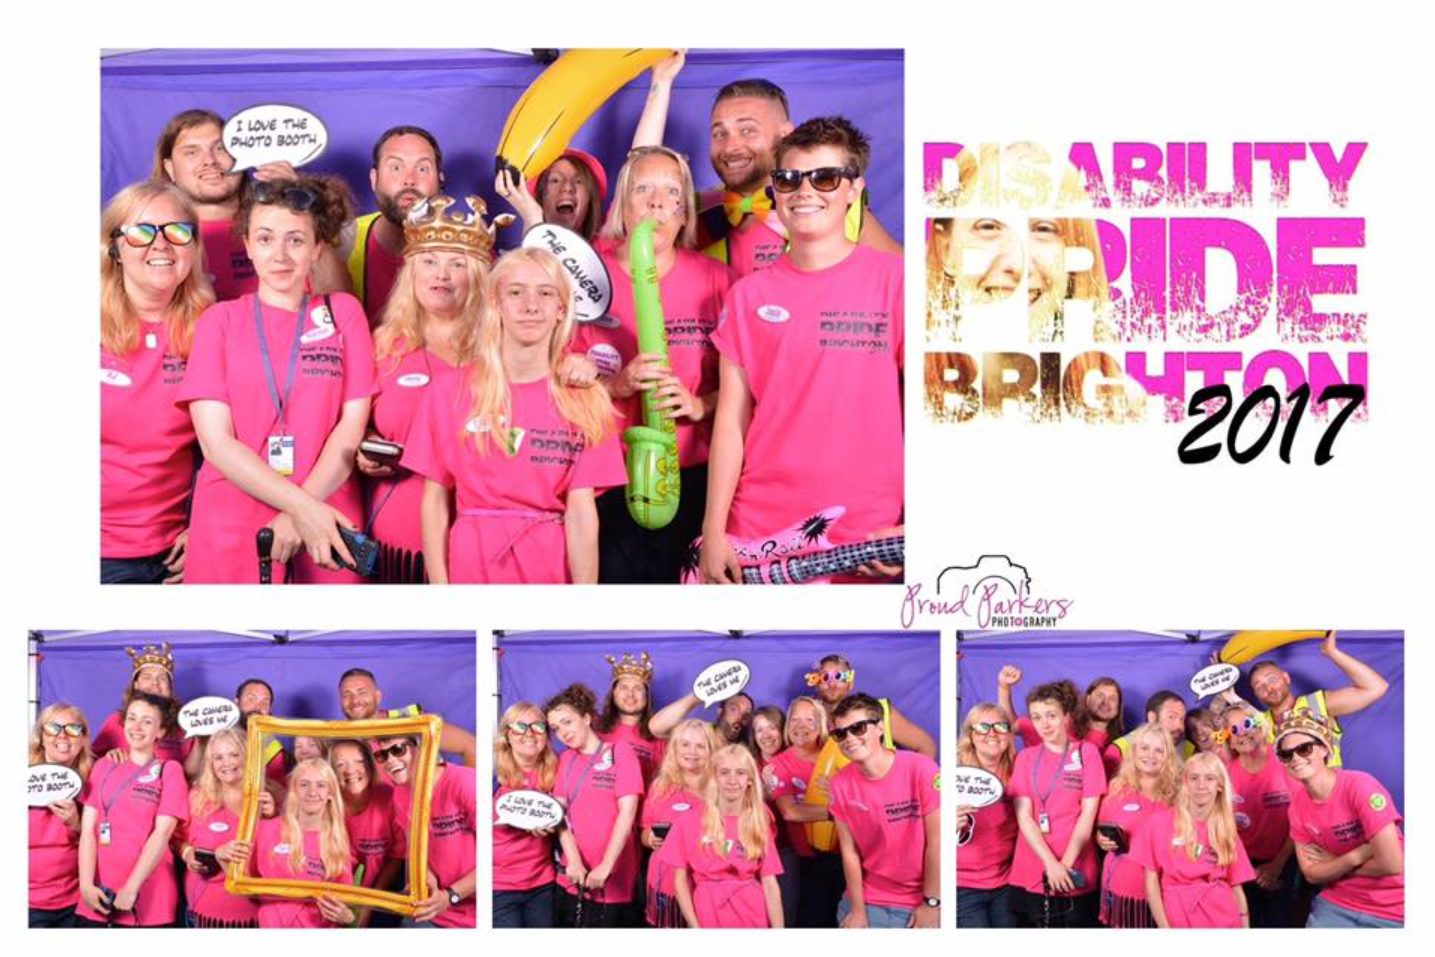 Photobooth images from 2017, with all of the Disability Pride Committee members, members of the team who supported the event organisation, and with Jenny Skelton and her daughter Charlie